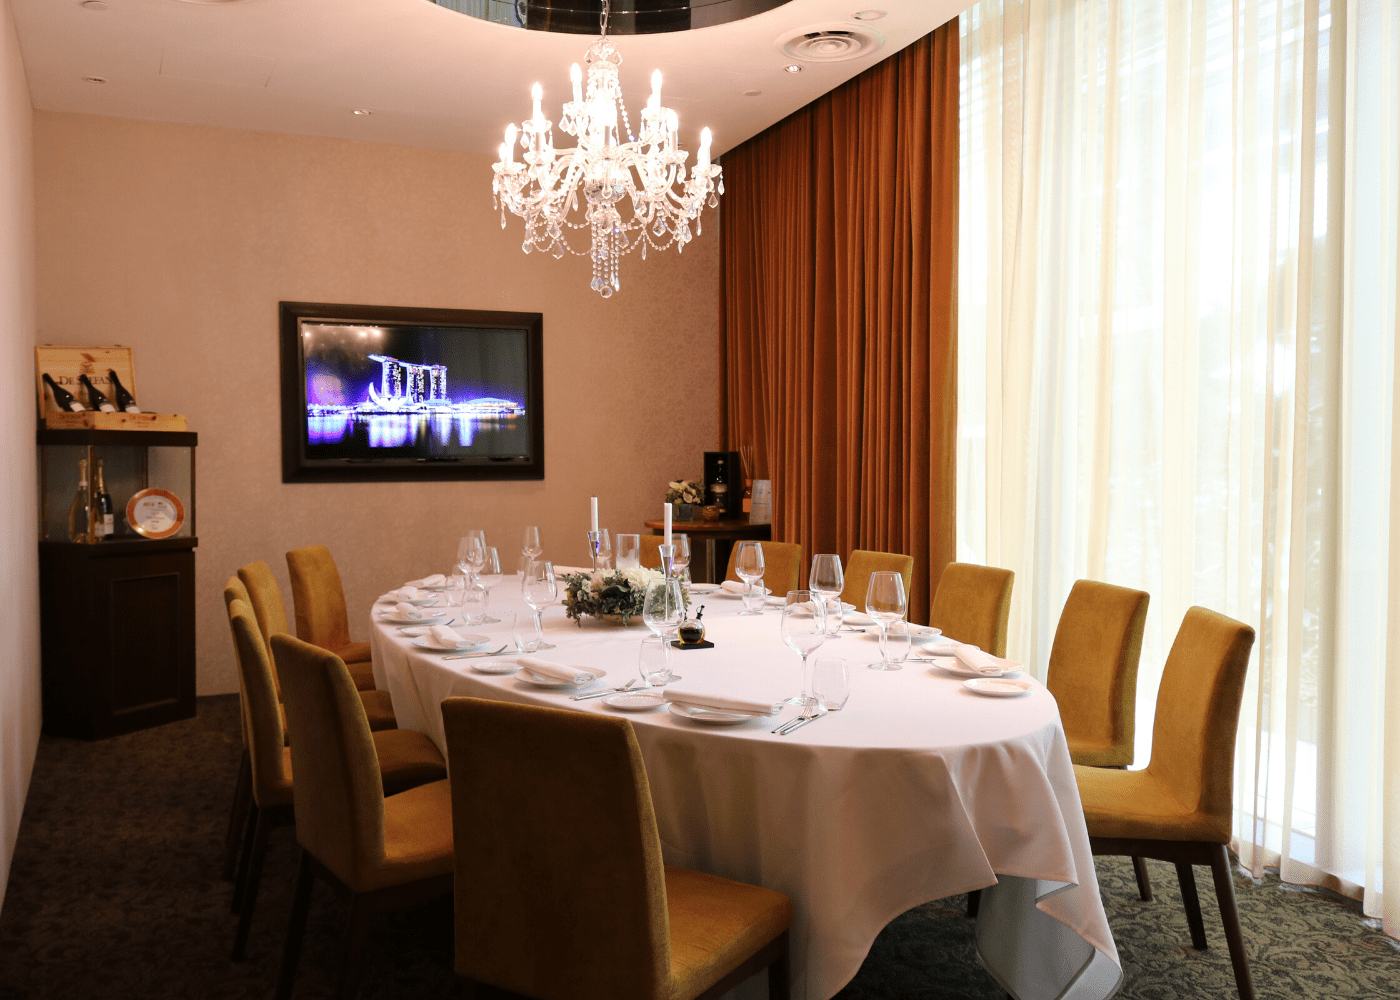 Private dining rooms in Singapore: Book a space at these restaurants for intimate gatherings